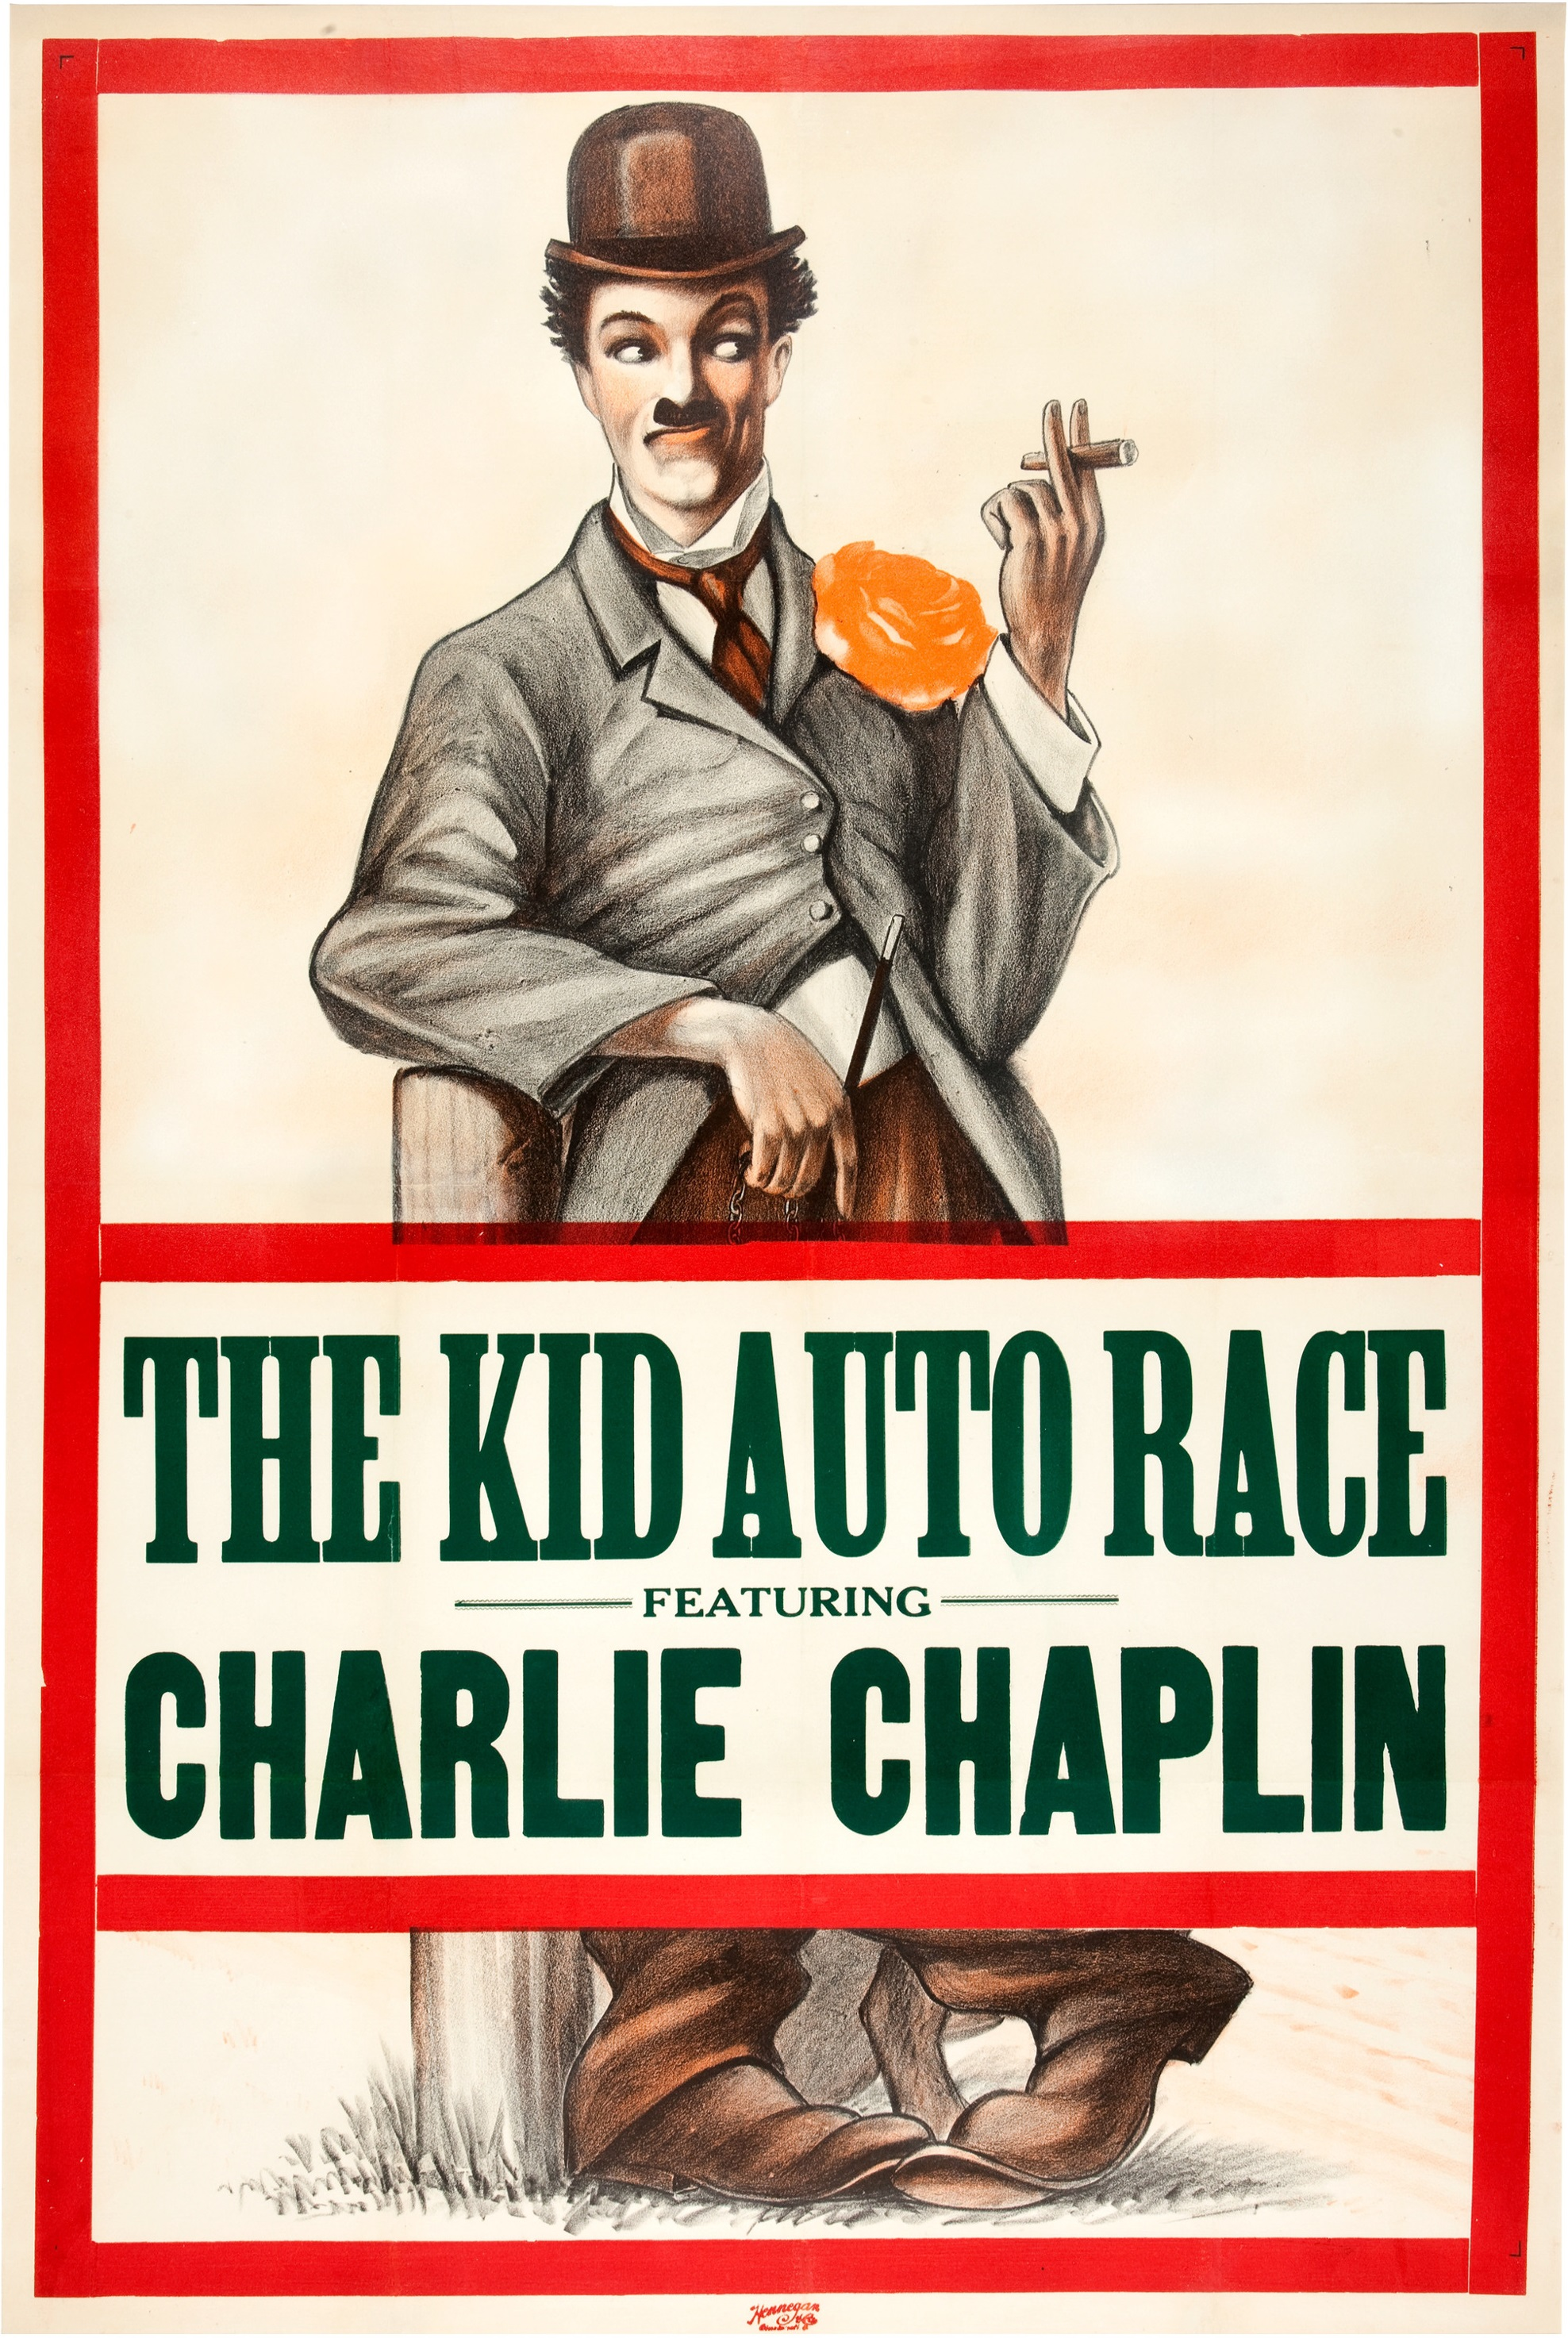 Kid Auto Races at Venice aka The Kid Auto Race (1914) US one sheet poster. Chaplin's second released film and the one in which the Little Tramp made his first public appearance. This poster's a real rarity and possibly the only surviving example, though it and others for his first few films were adapted from a generic variant. Relatively few copies were printed as Chaplin was not yet famous, which explains why it looks so little like him – but all that would change immeasurably by the end of his Keystone Year.